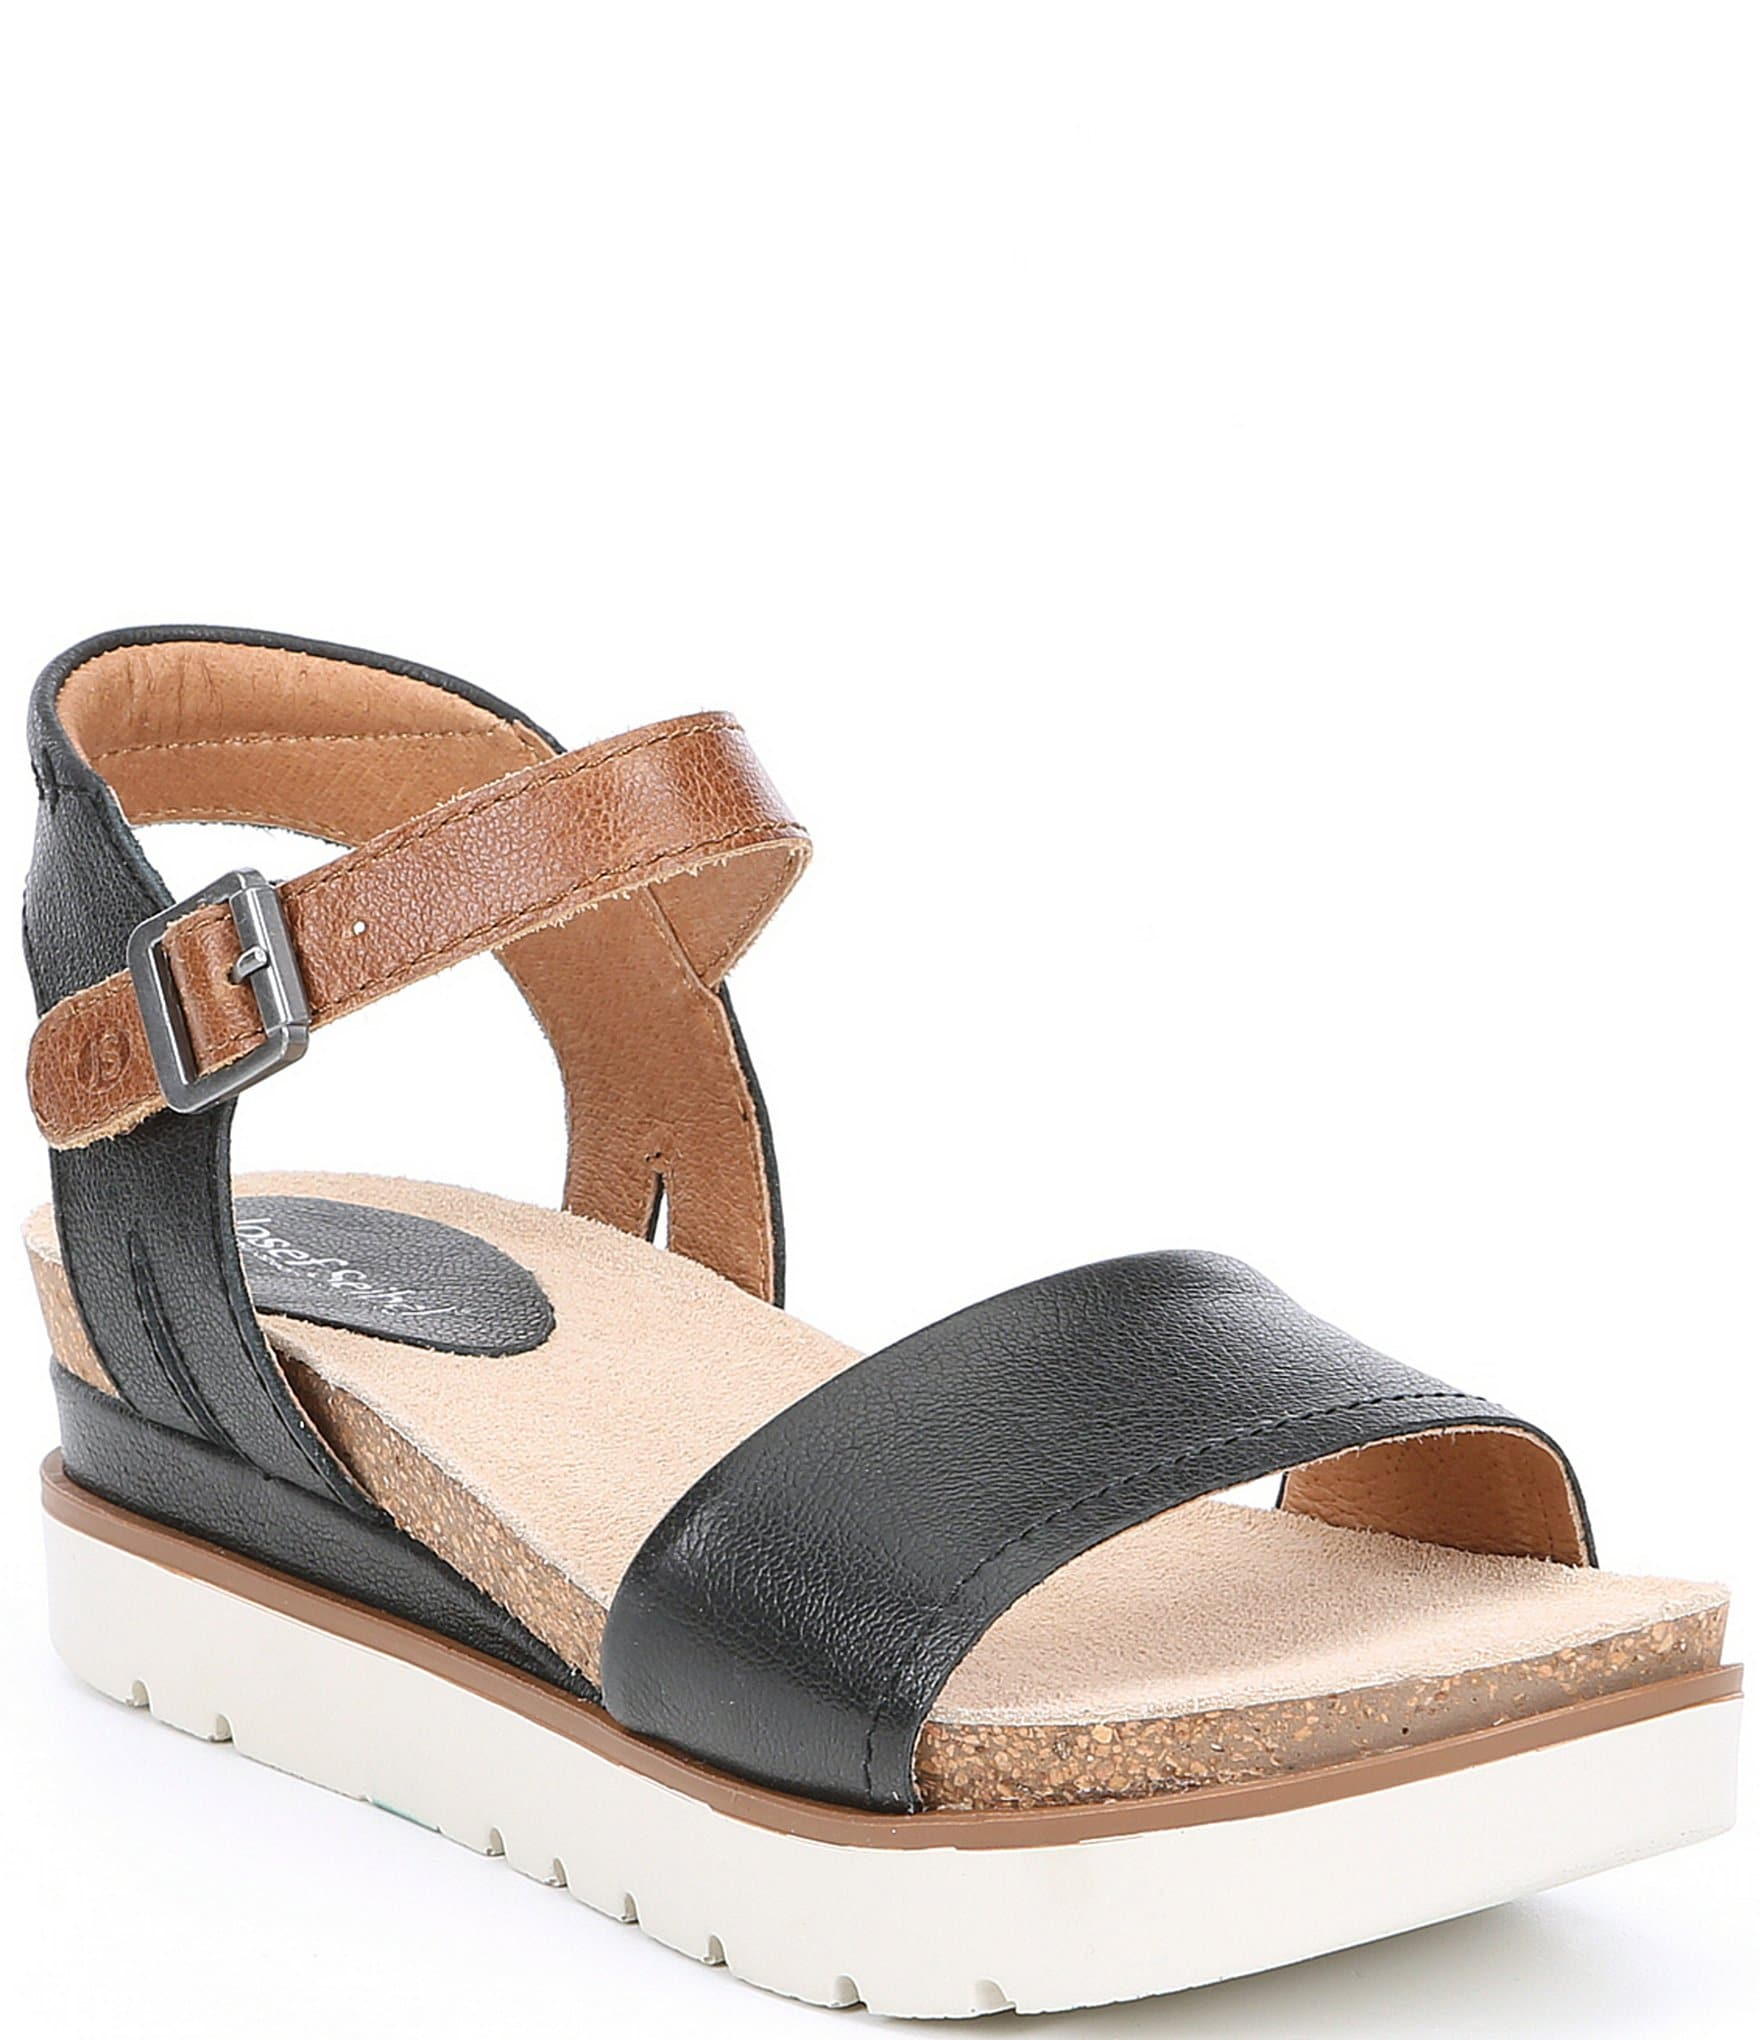 huge selection of aba0e 880bb Josef Seibel Clea 01 Leather Sandals